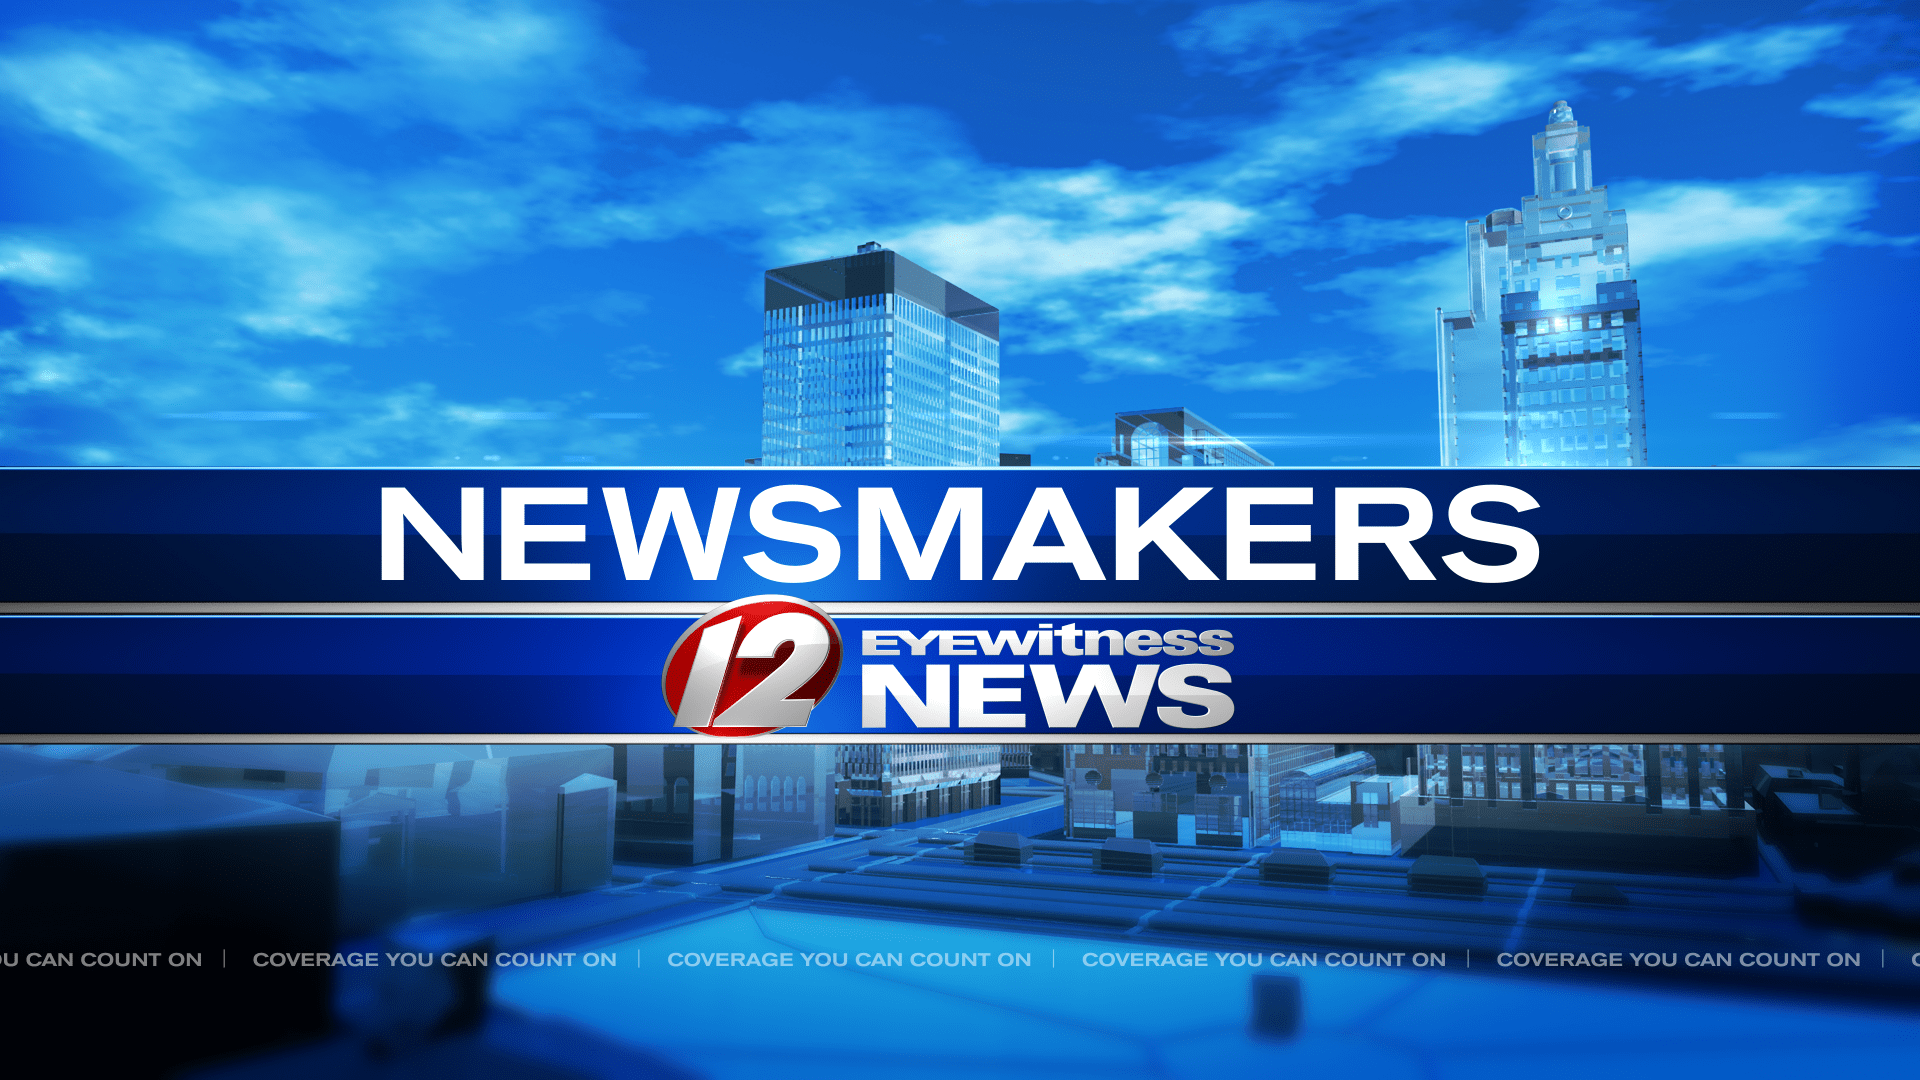 newsmakers-image-to-update_1519939738635.png